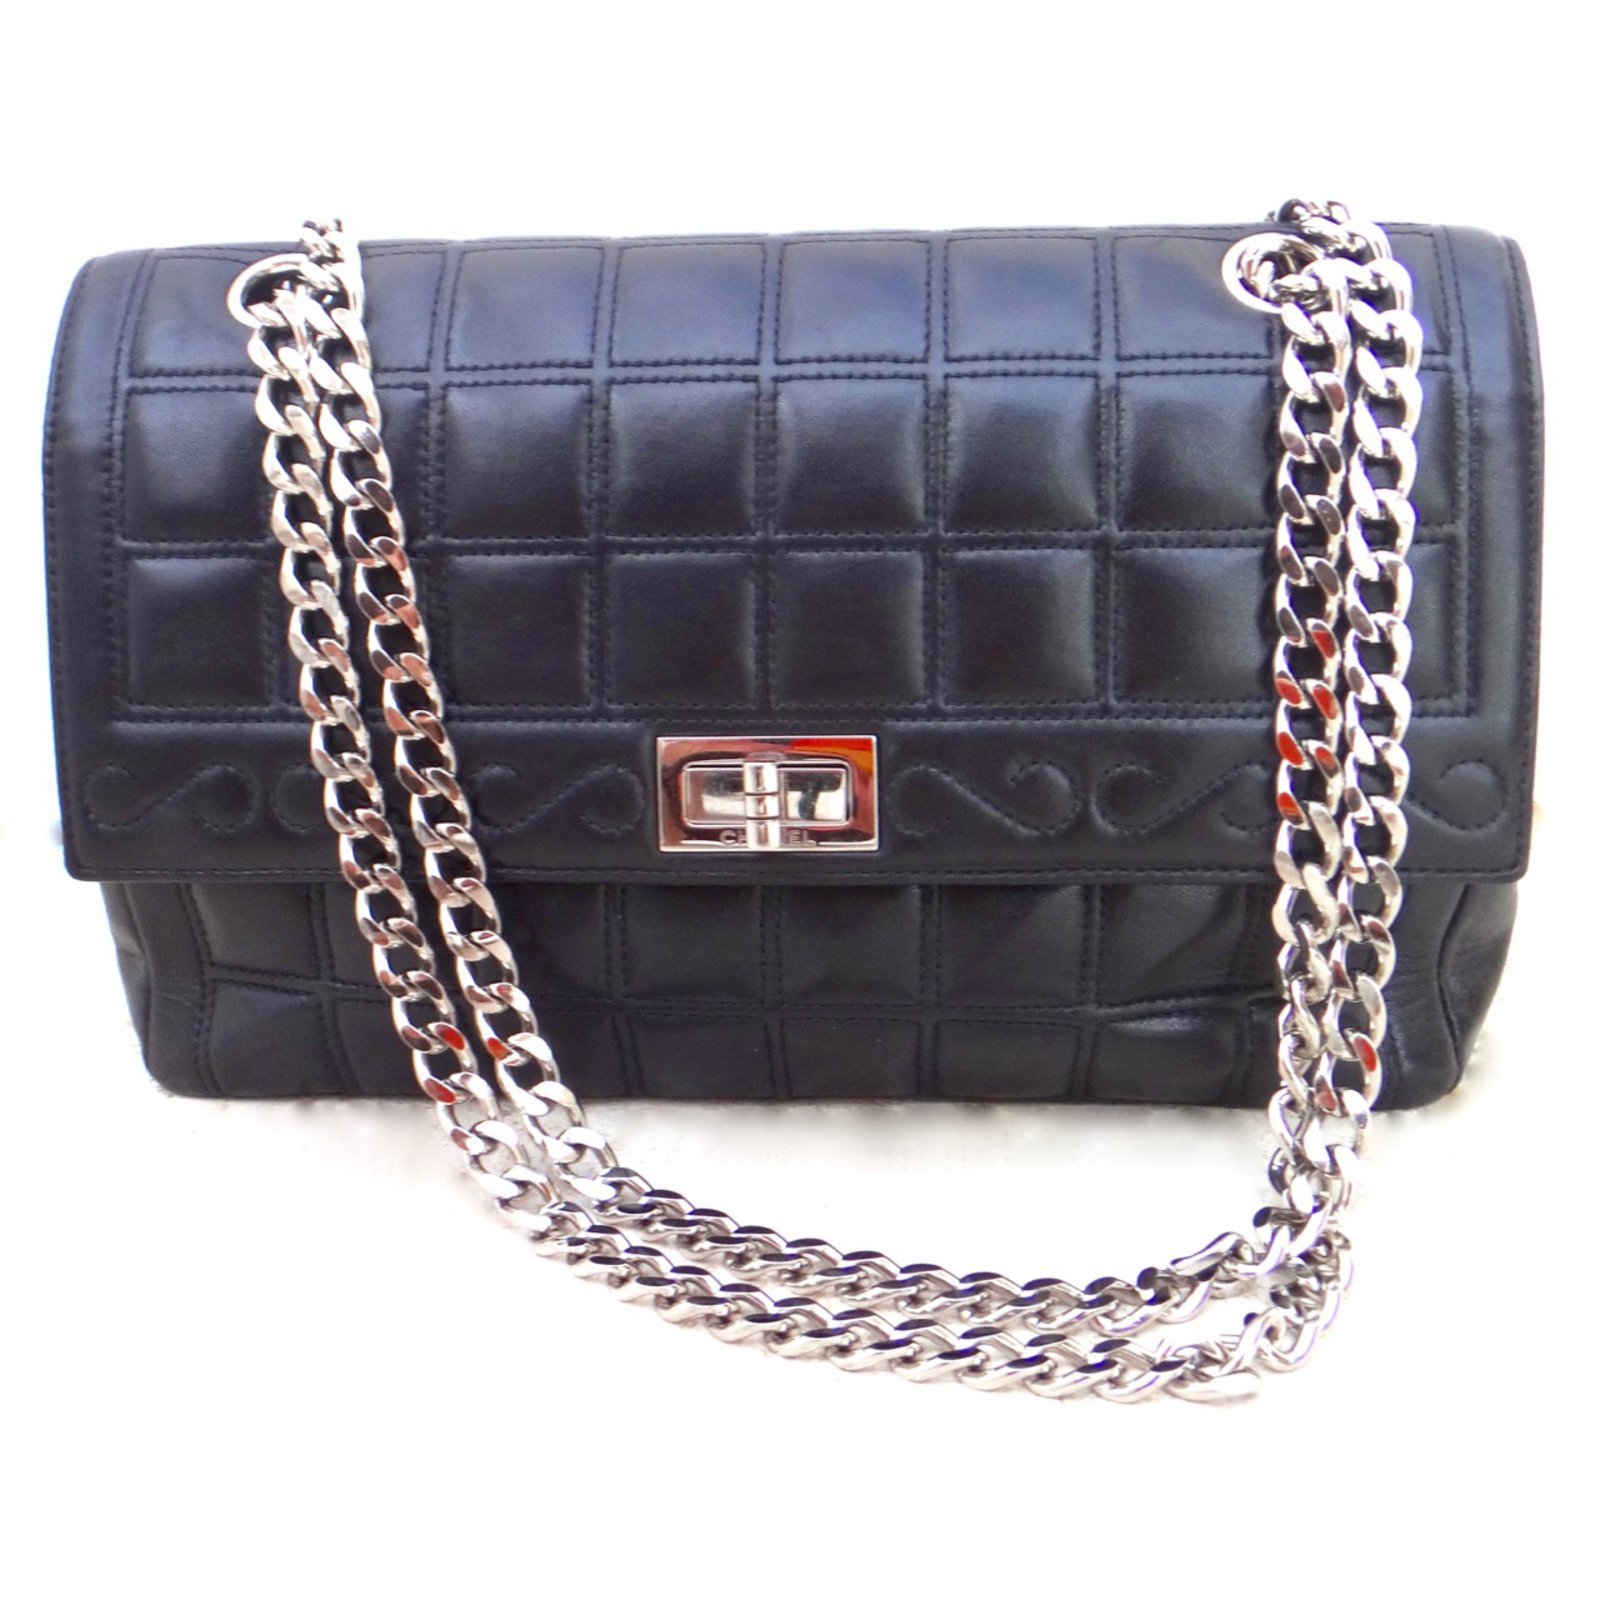 82856f2d32dd Chanel Limited Edition Bags 2016 | Stanford Center for Opportunity ...